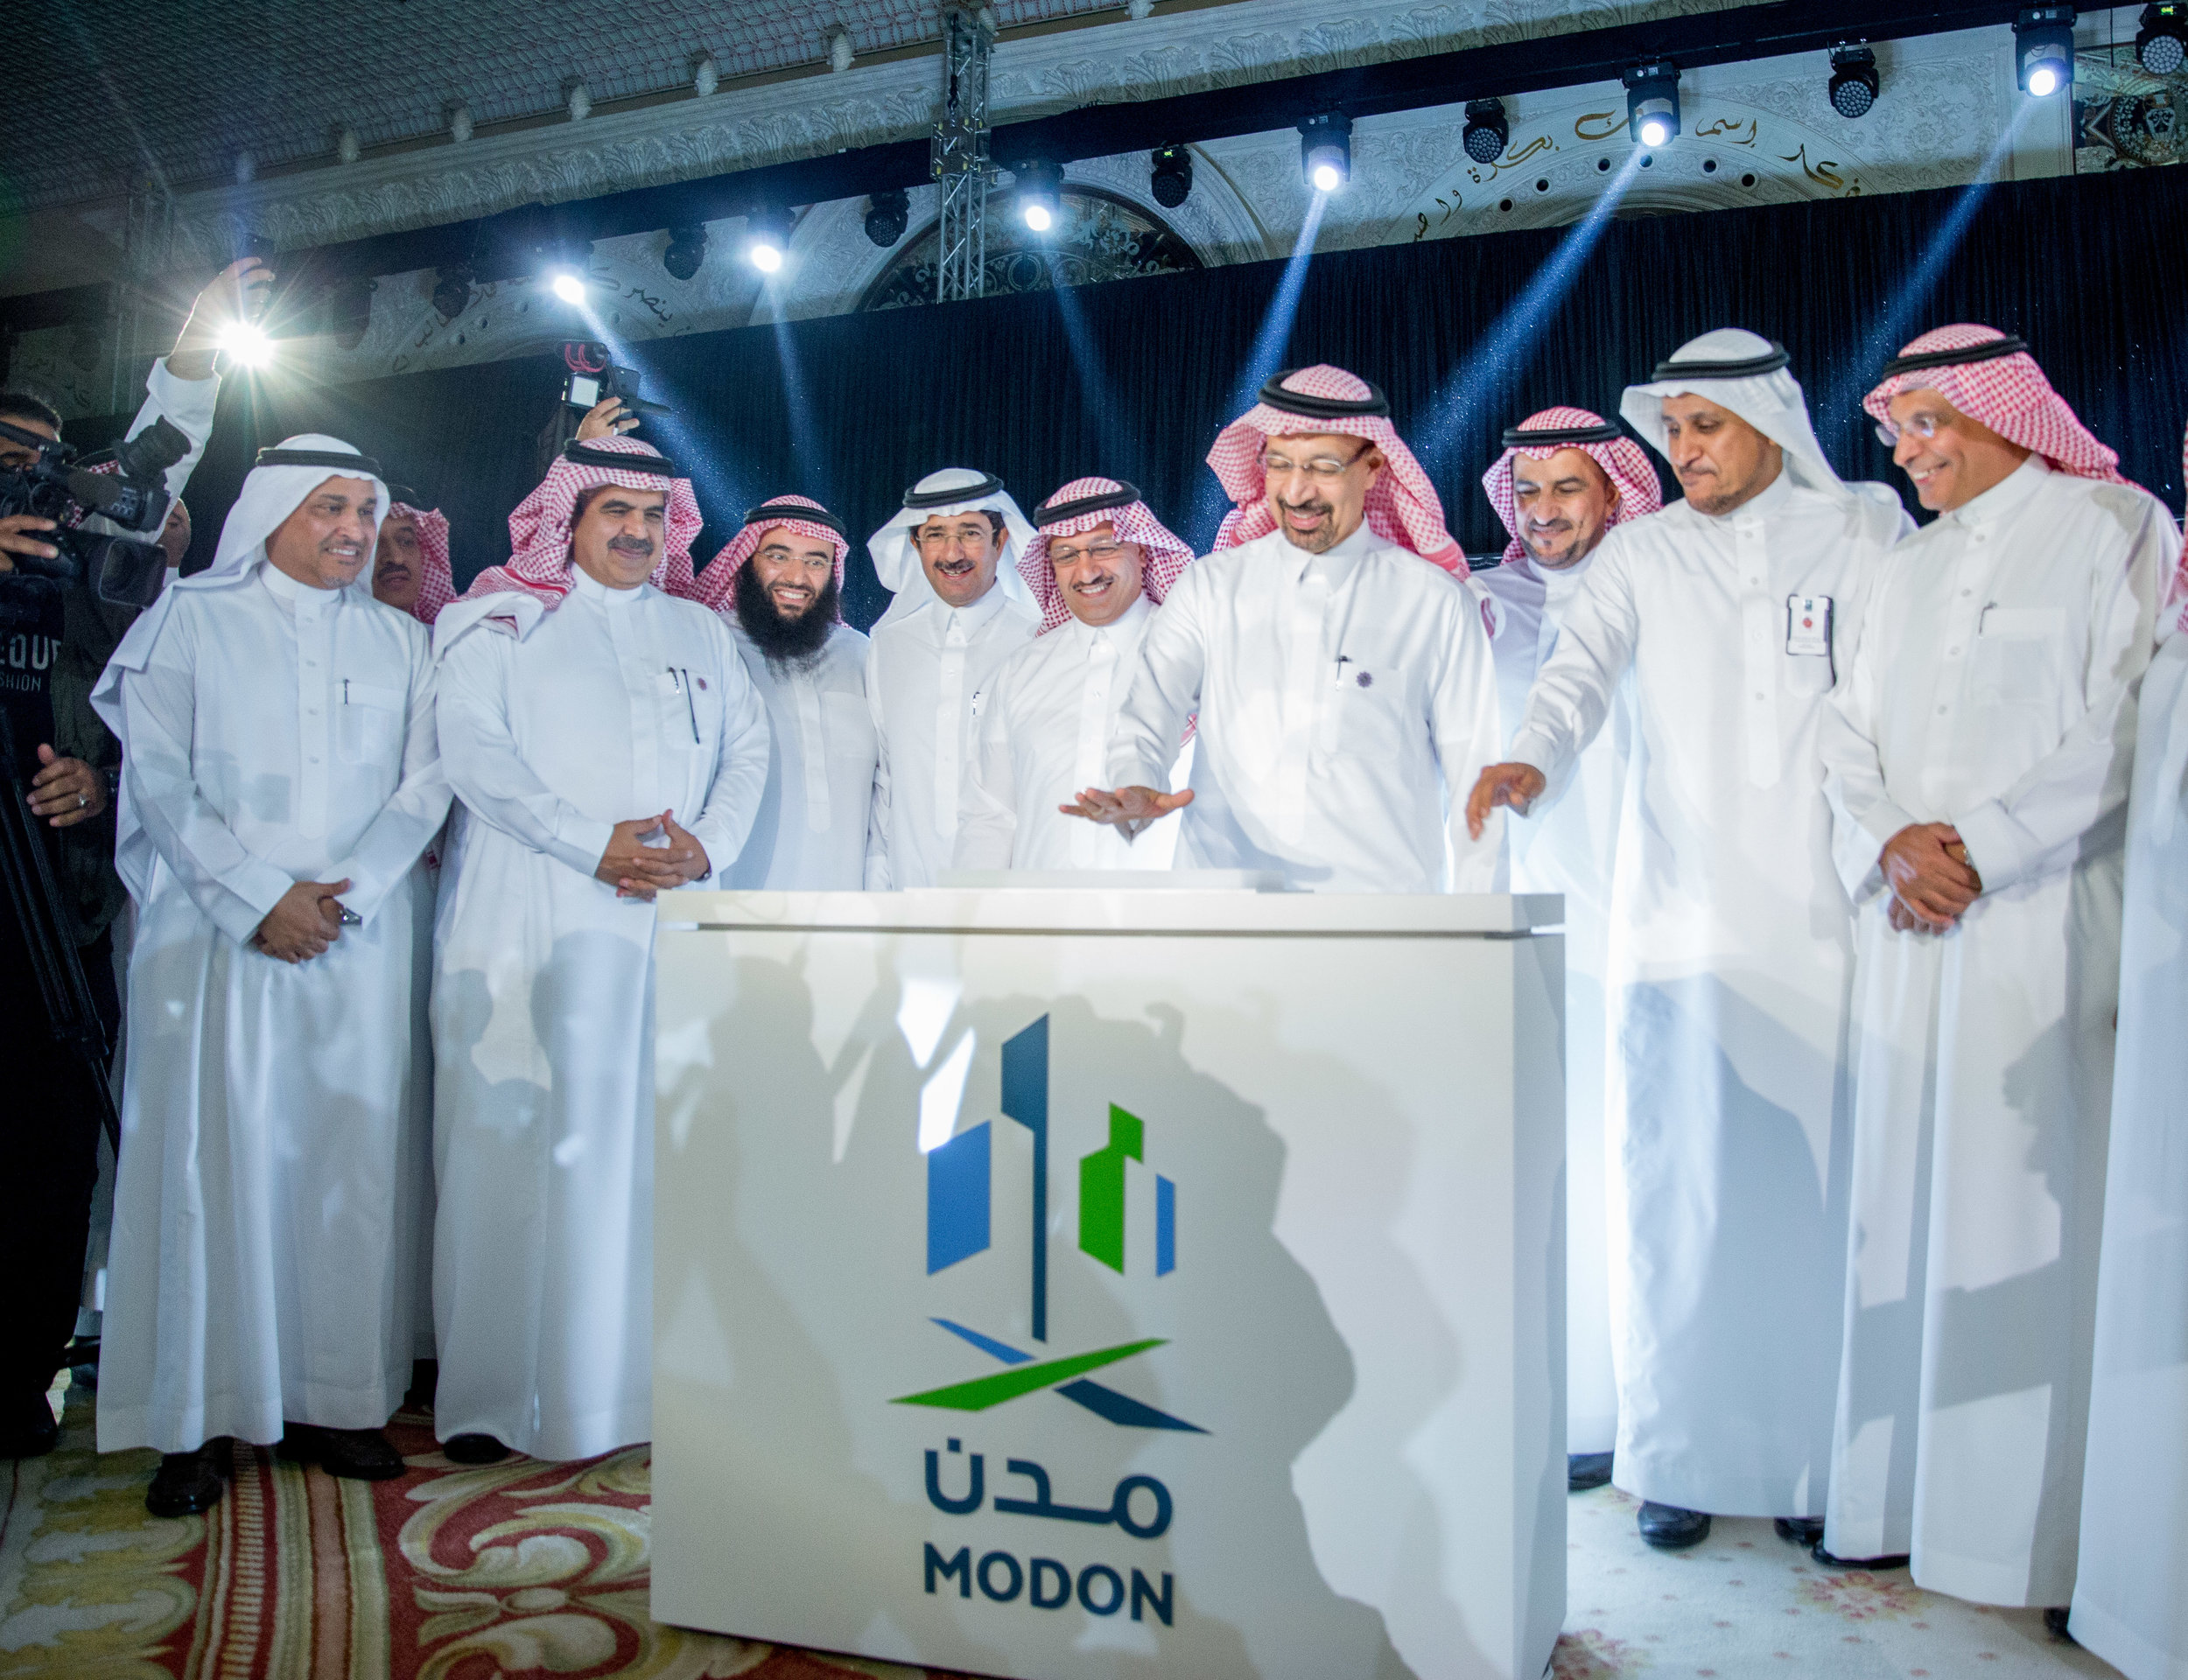 Saudi Arabia's Energy Minister Khalid Al-Falih launches new identity and strategy for Saudi Industrial Property Authority